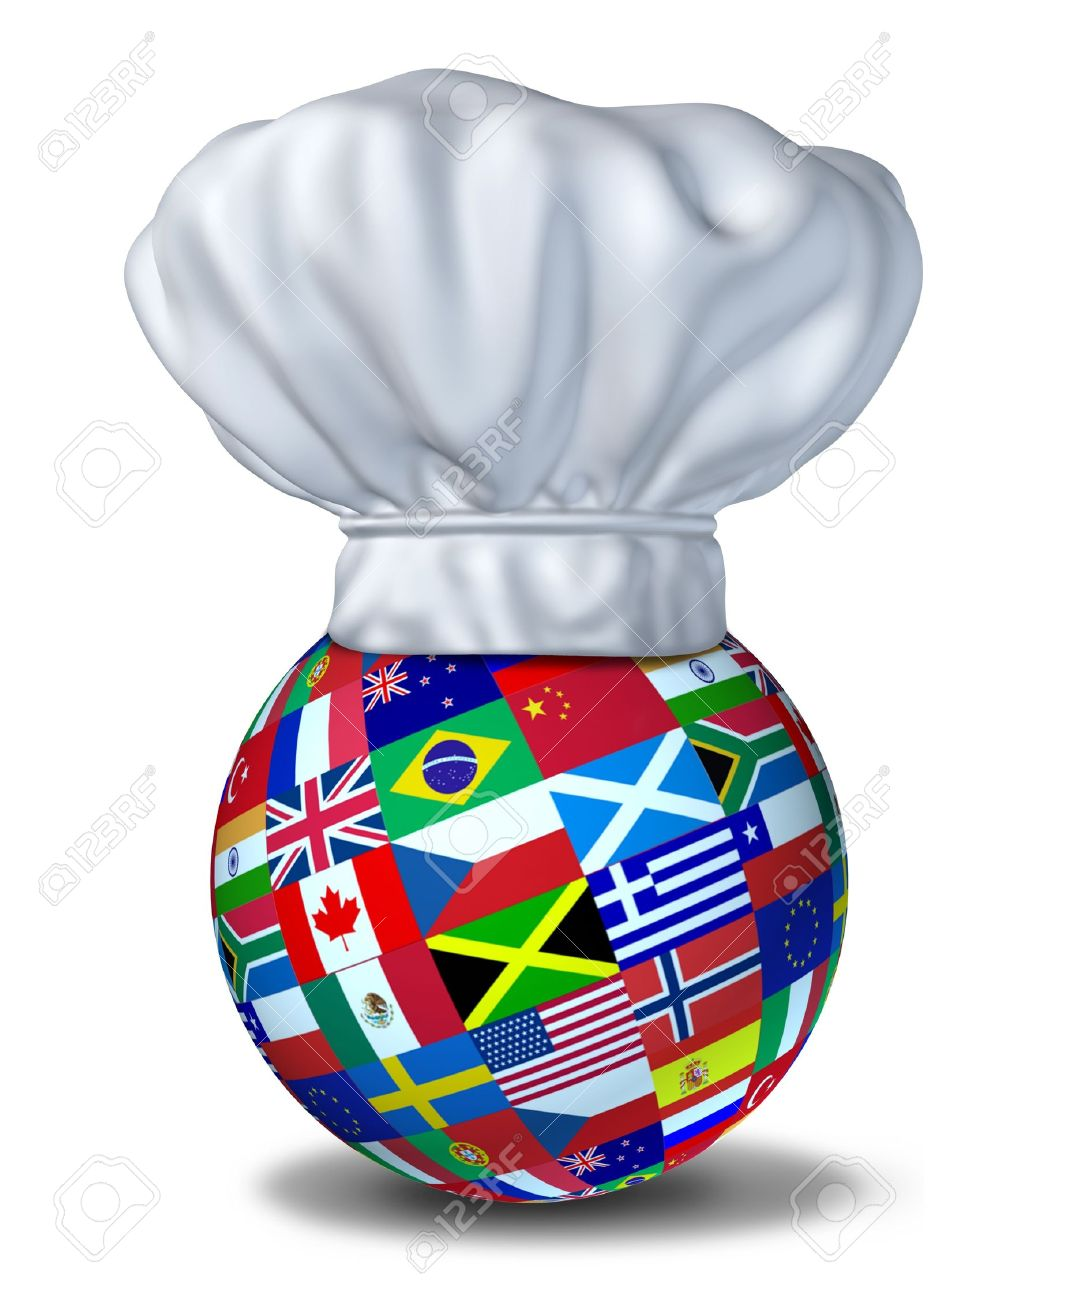 International foods and cuisines of the world represented by a restaurant chef hat and flags of countries on a sphere resting on the floor. Stock Photo - 10892109